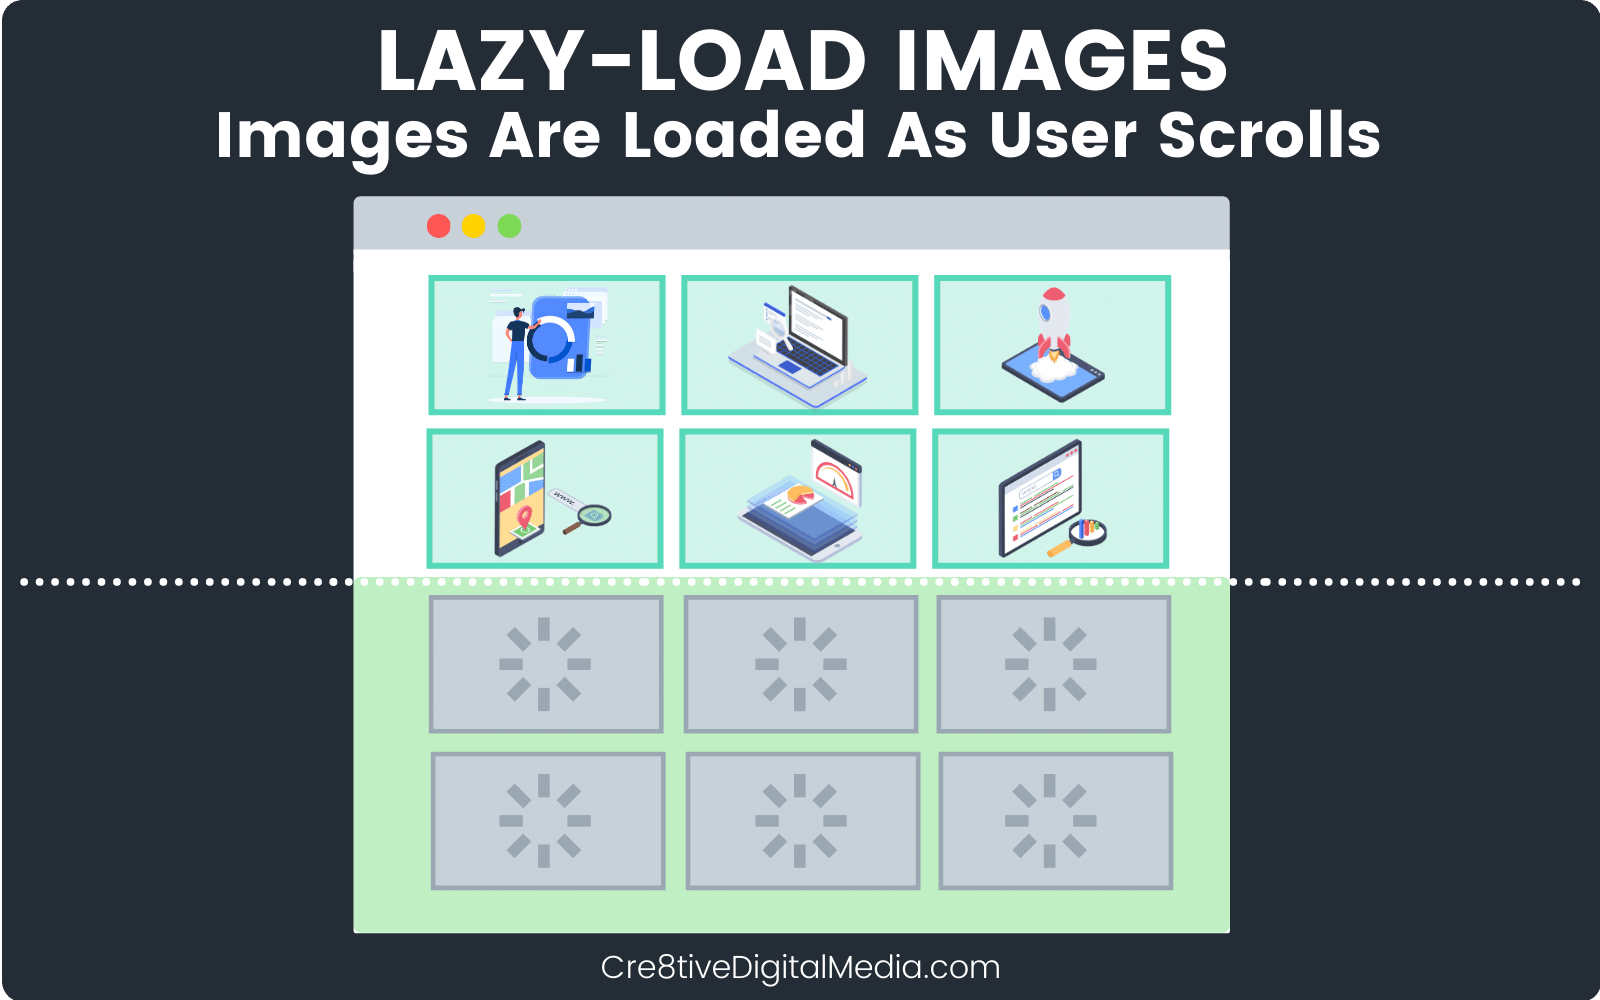 Lazy Load Images on your Real Estate Agency's Website